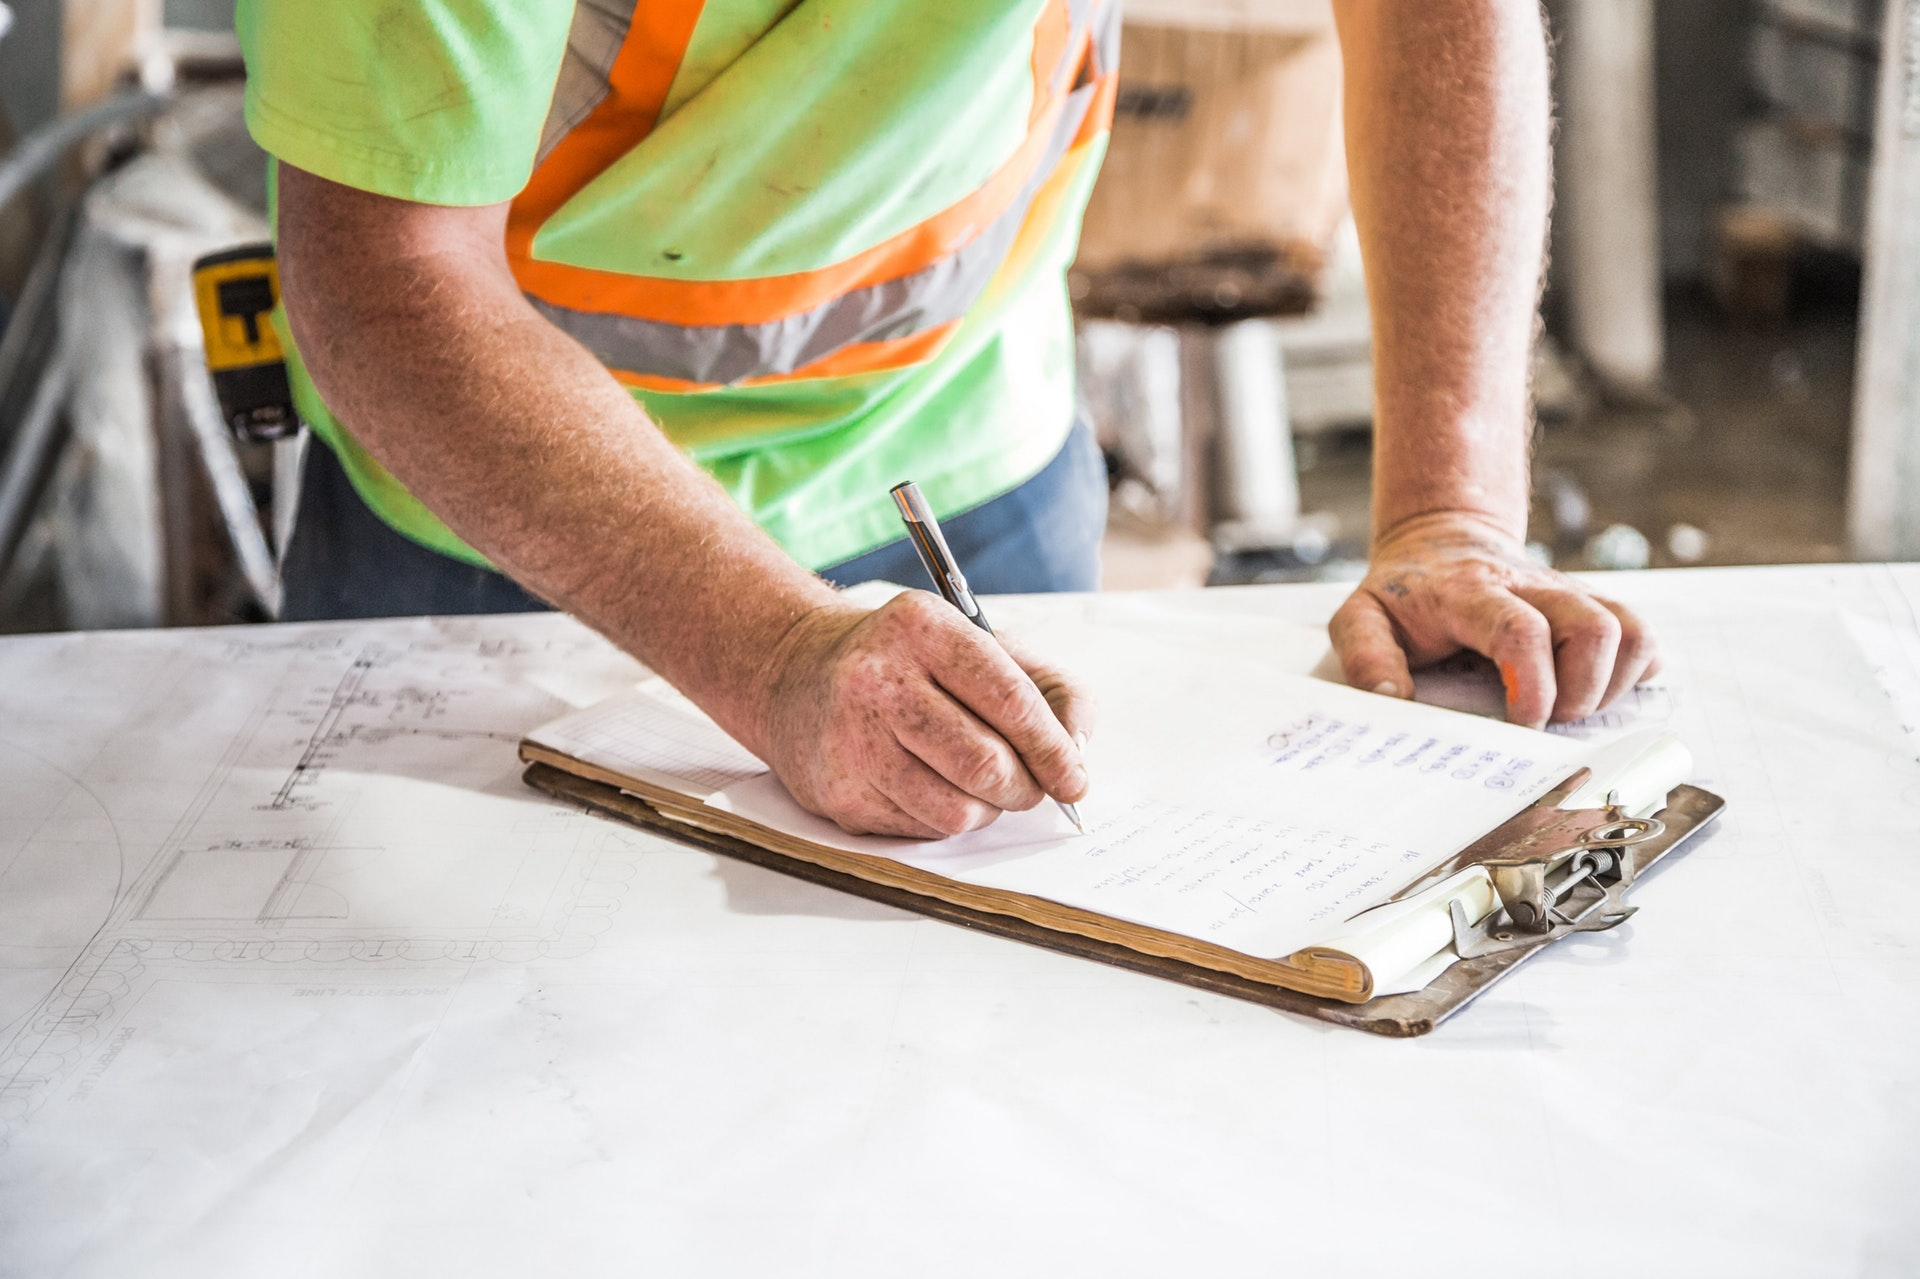 What to look for when hiring a tradesman